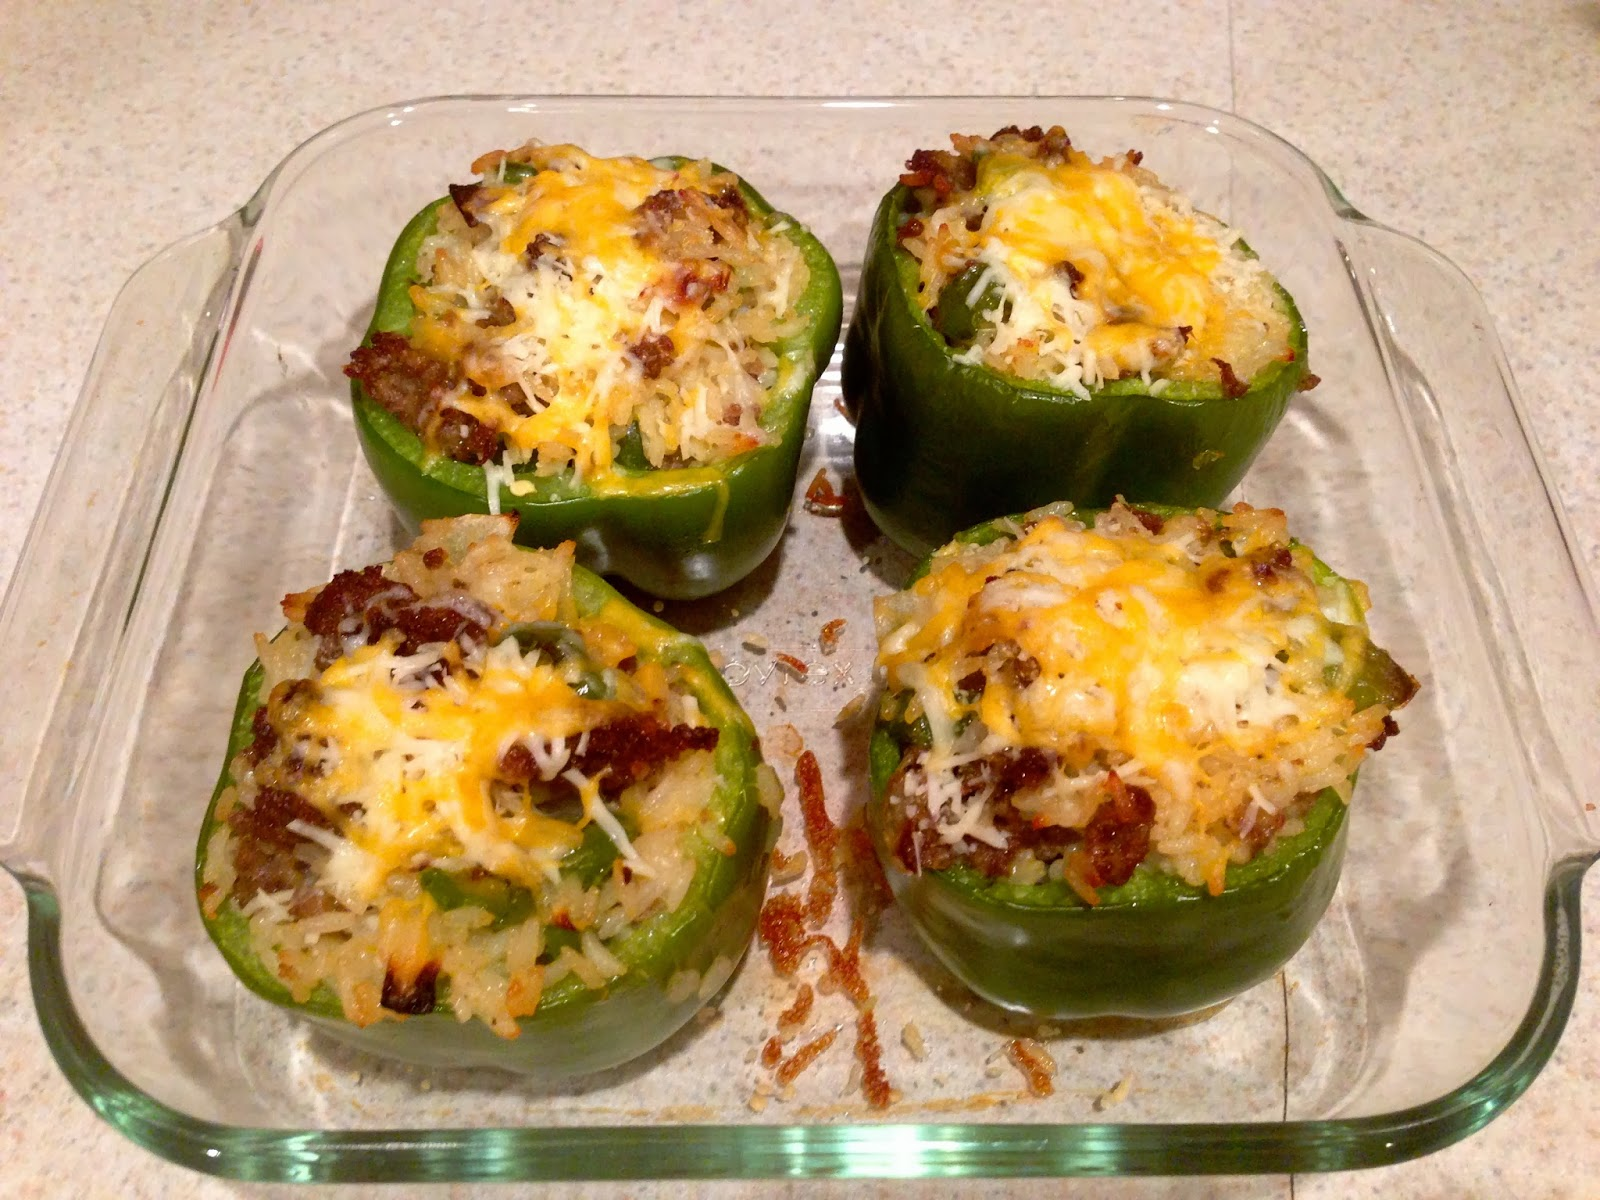 Stuffed Green Peppers With Rice Vegetables And Sausage Makes 4 Stuffed ...